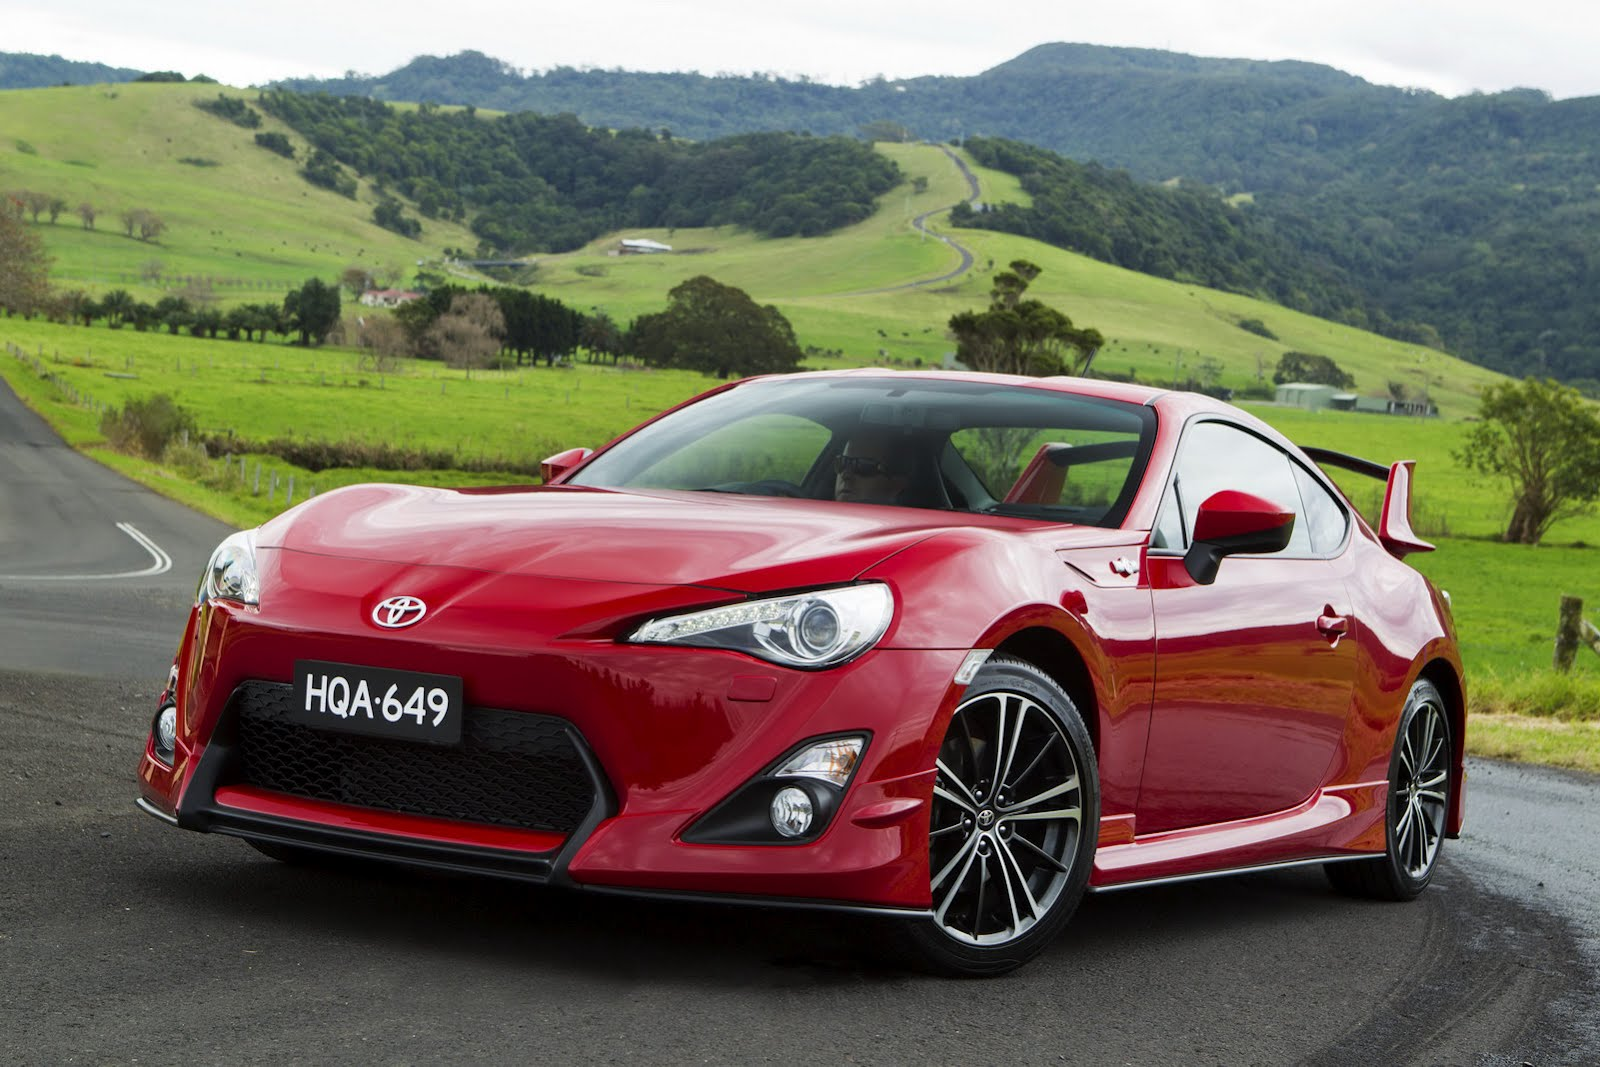 La Toyota GT-86 et la Golf 7 primées aux Top Gear awards - Blog auto